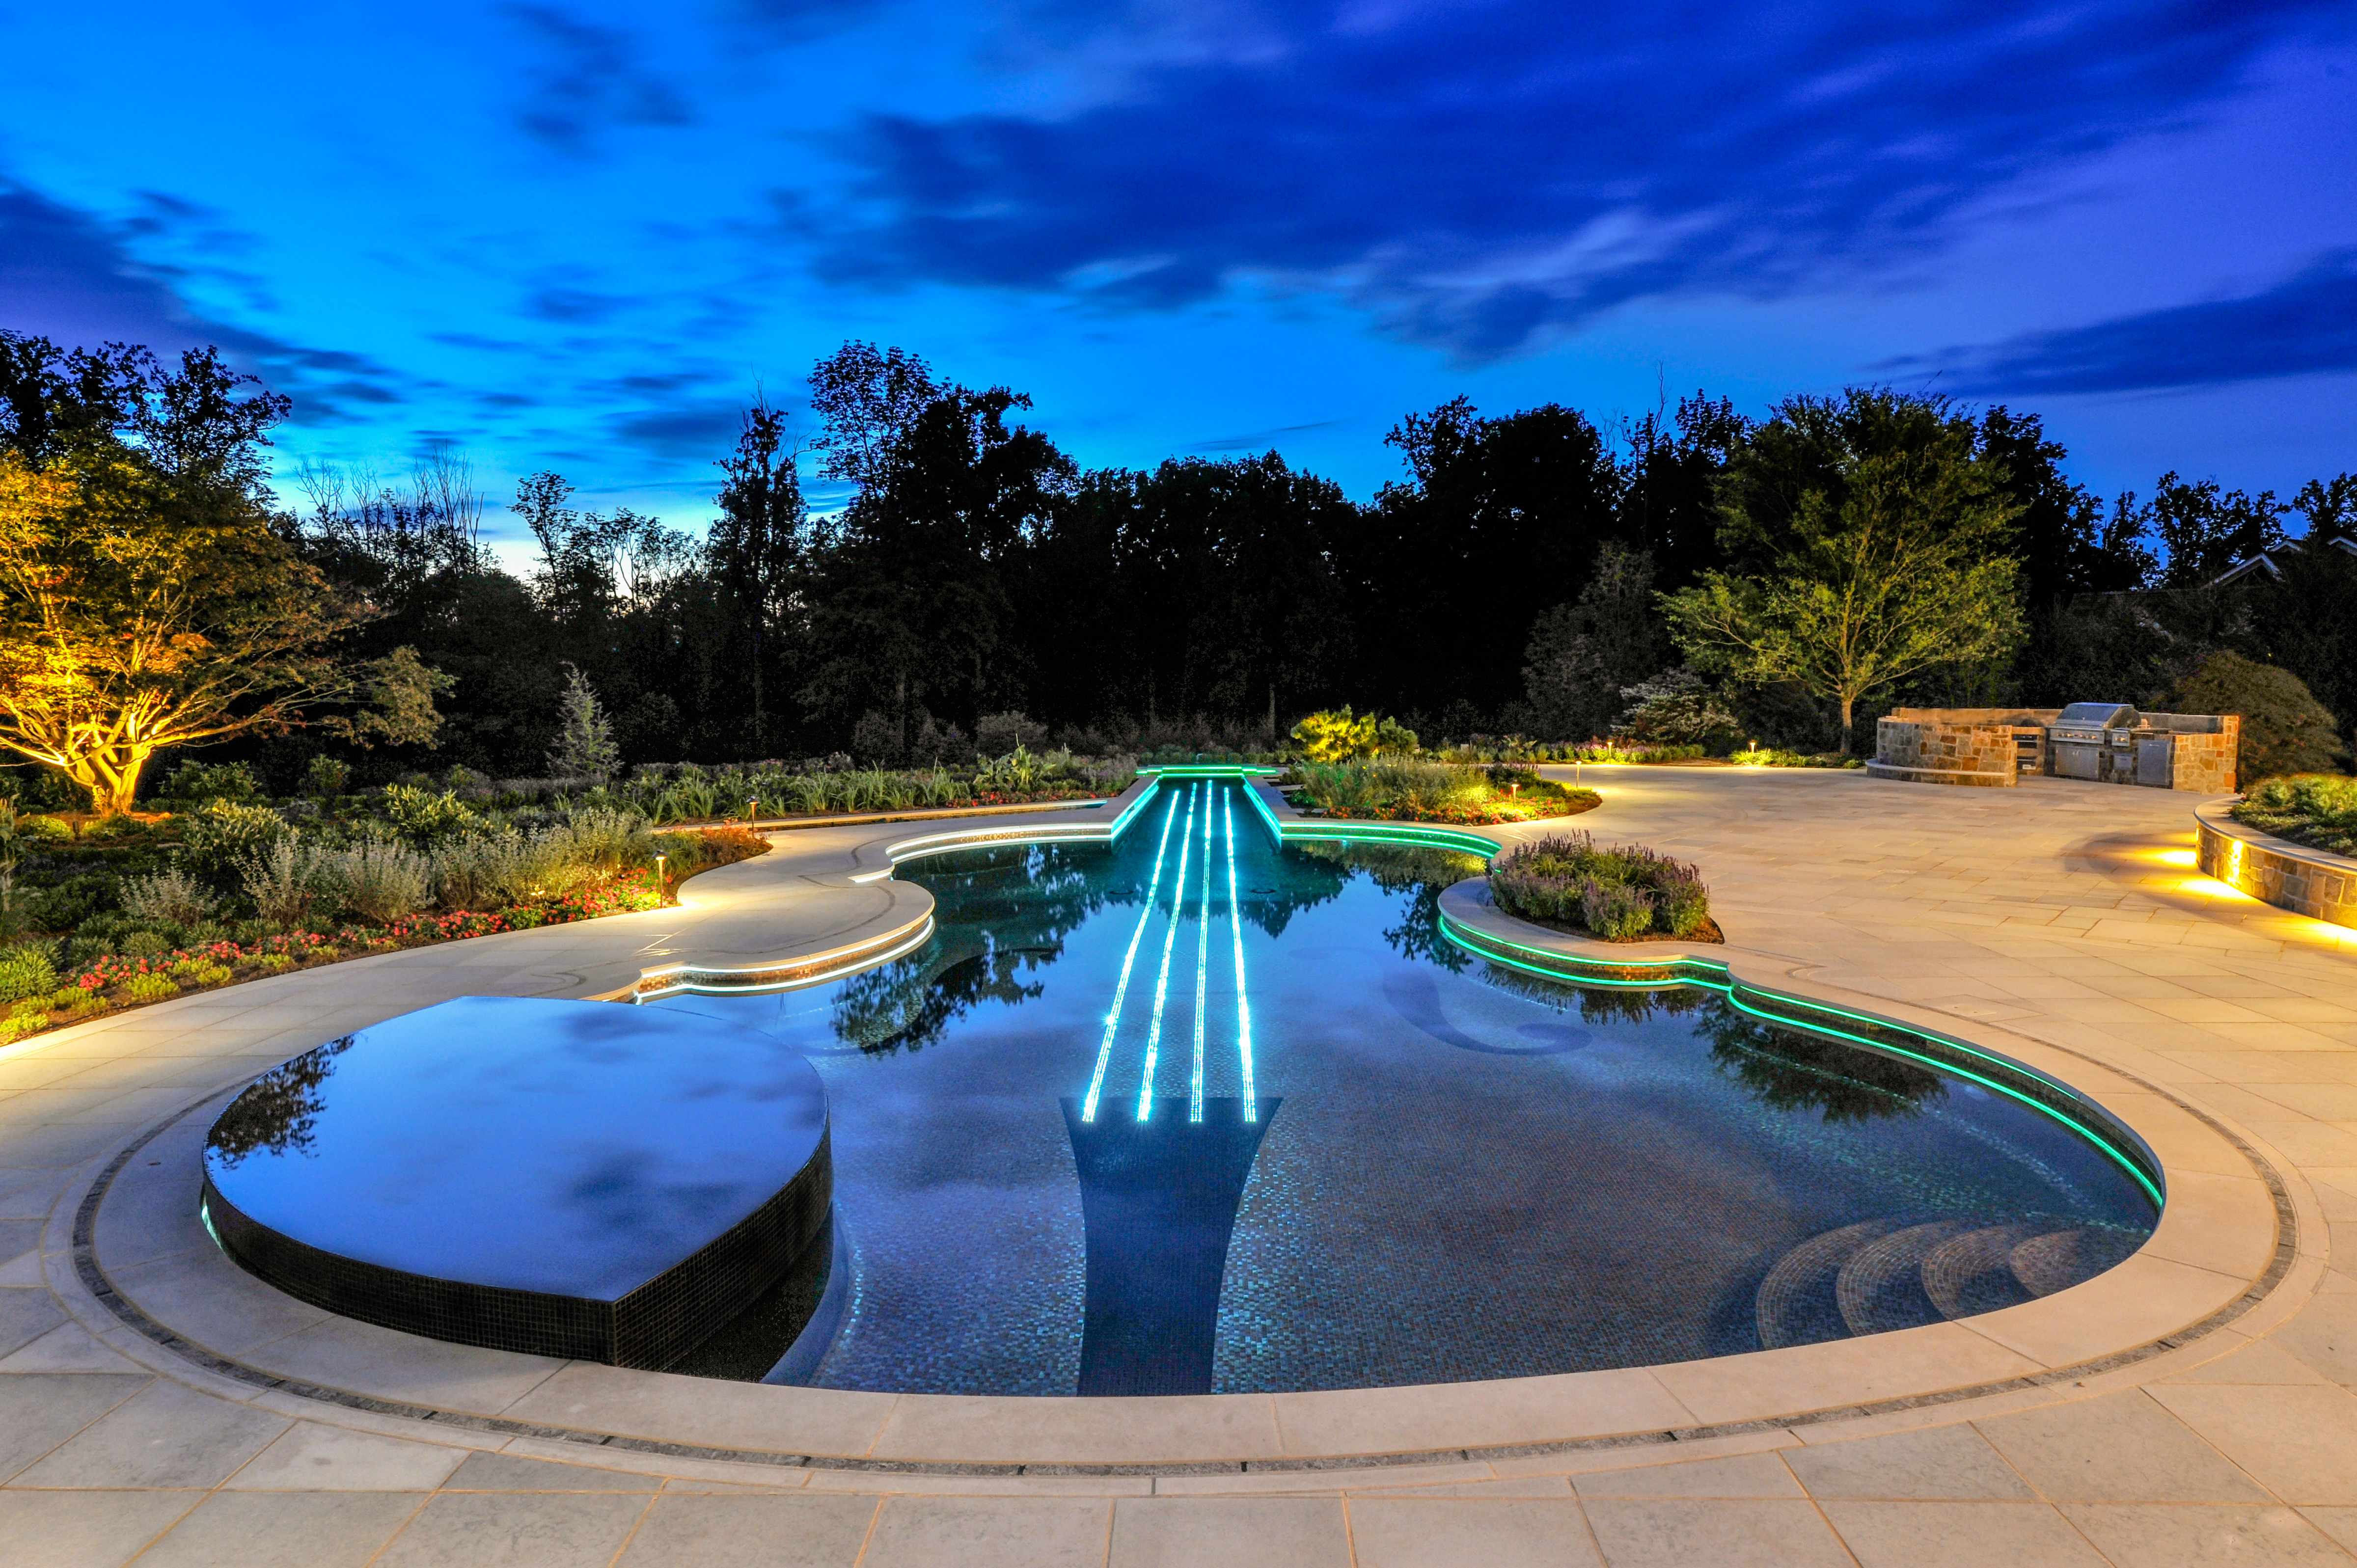 Music themed luxury swimming pool design wins gold bergen for Swimming pool spa designs